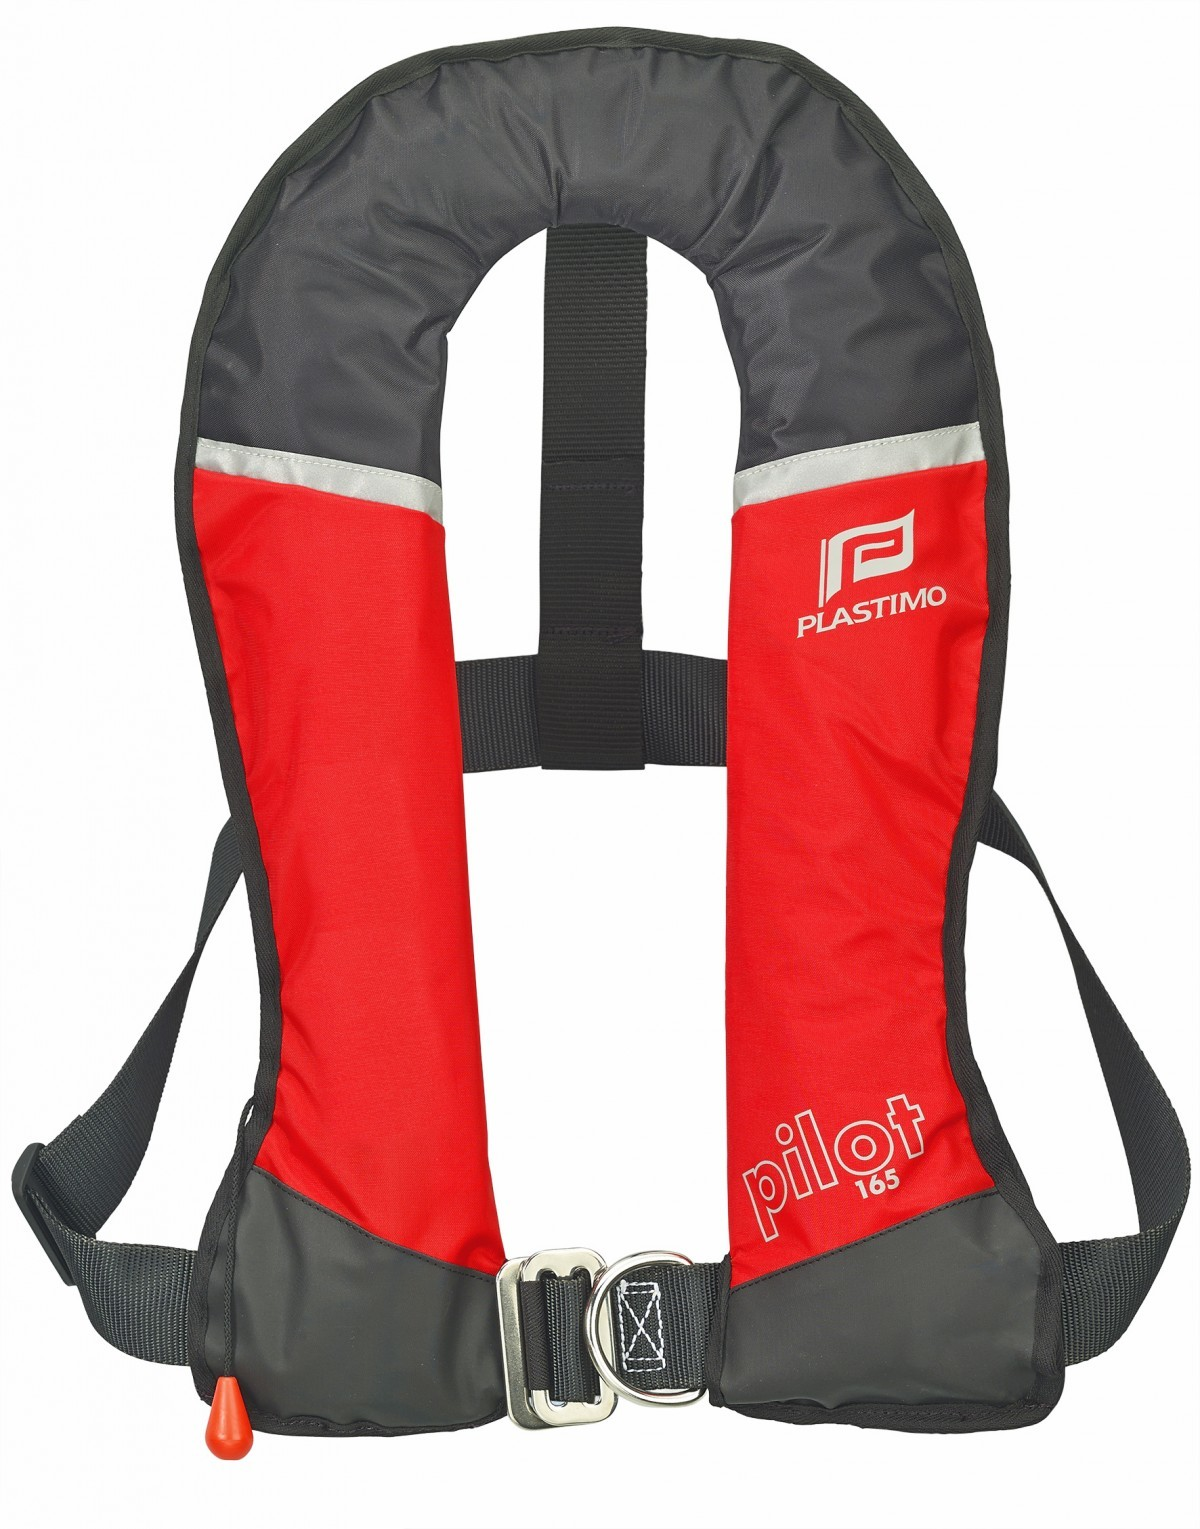 Pilot 165 inflatable lifejacket with harness